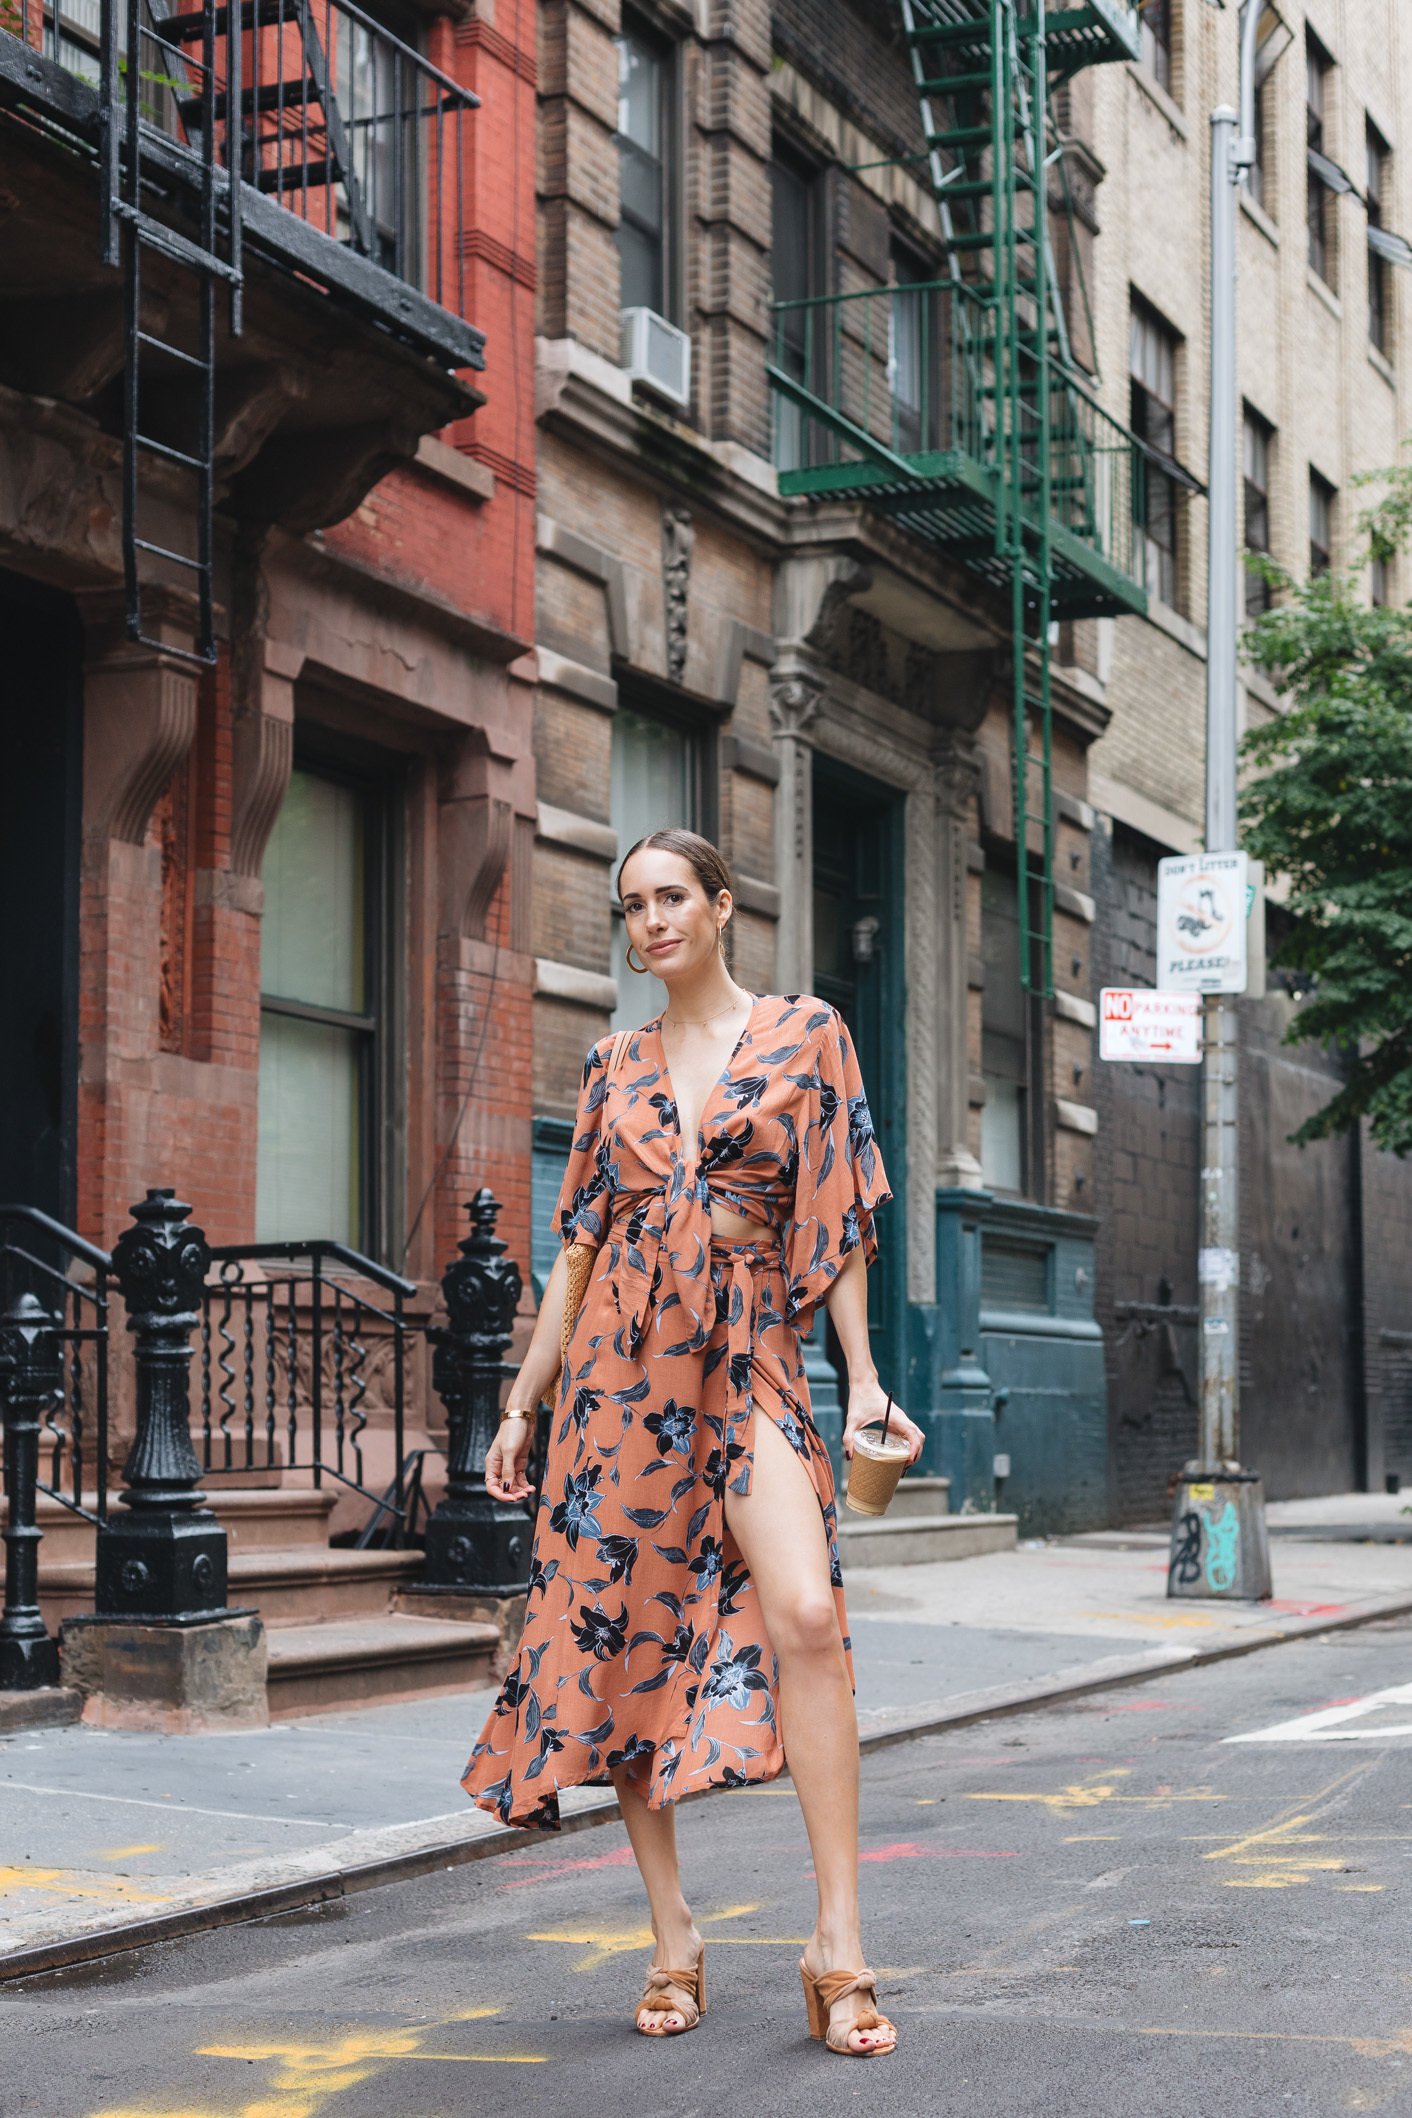 Louise-Roe-wearing-Fall-Florals-in-New-York-Faithfull-The-Brand-Dress-1